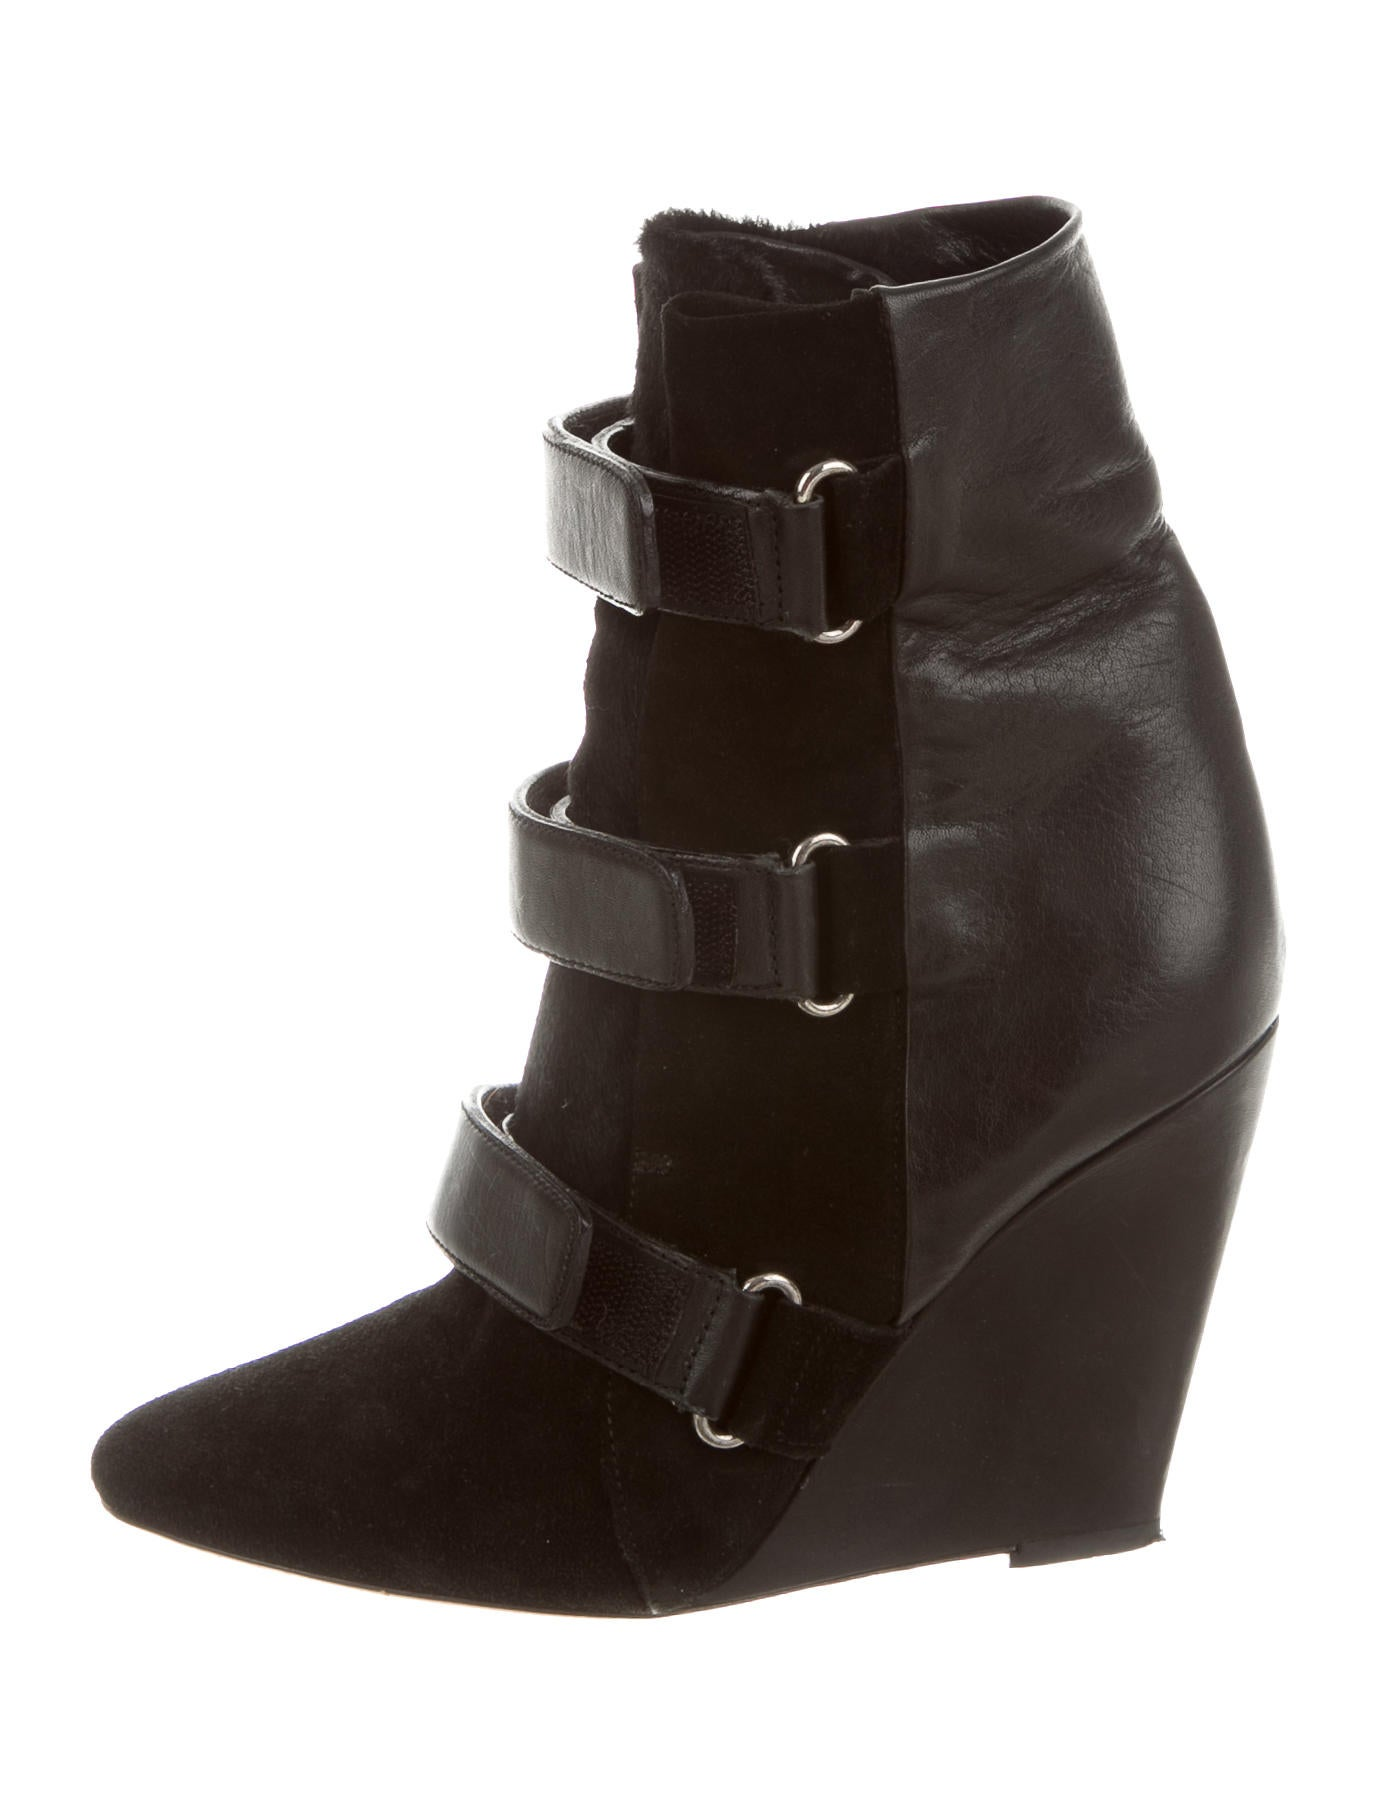 marant suede wedge ankle boots shoes isa36410